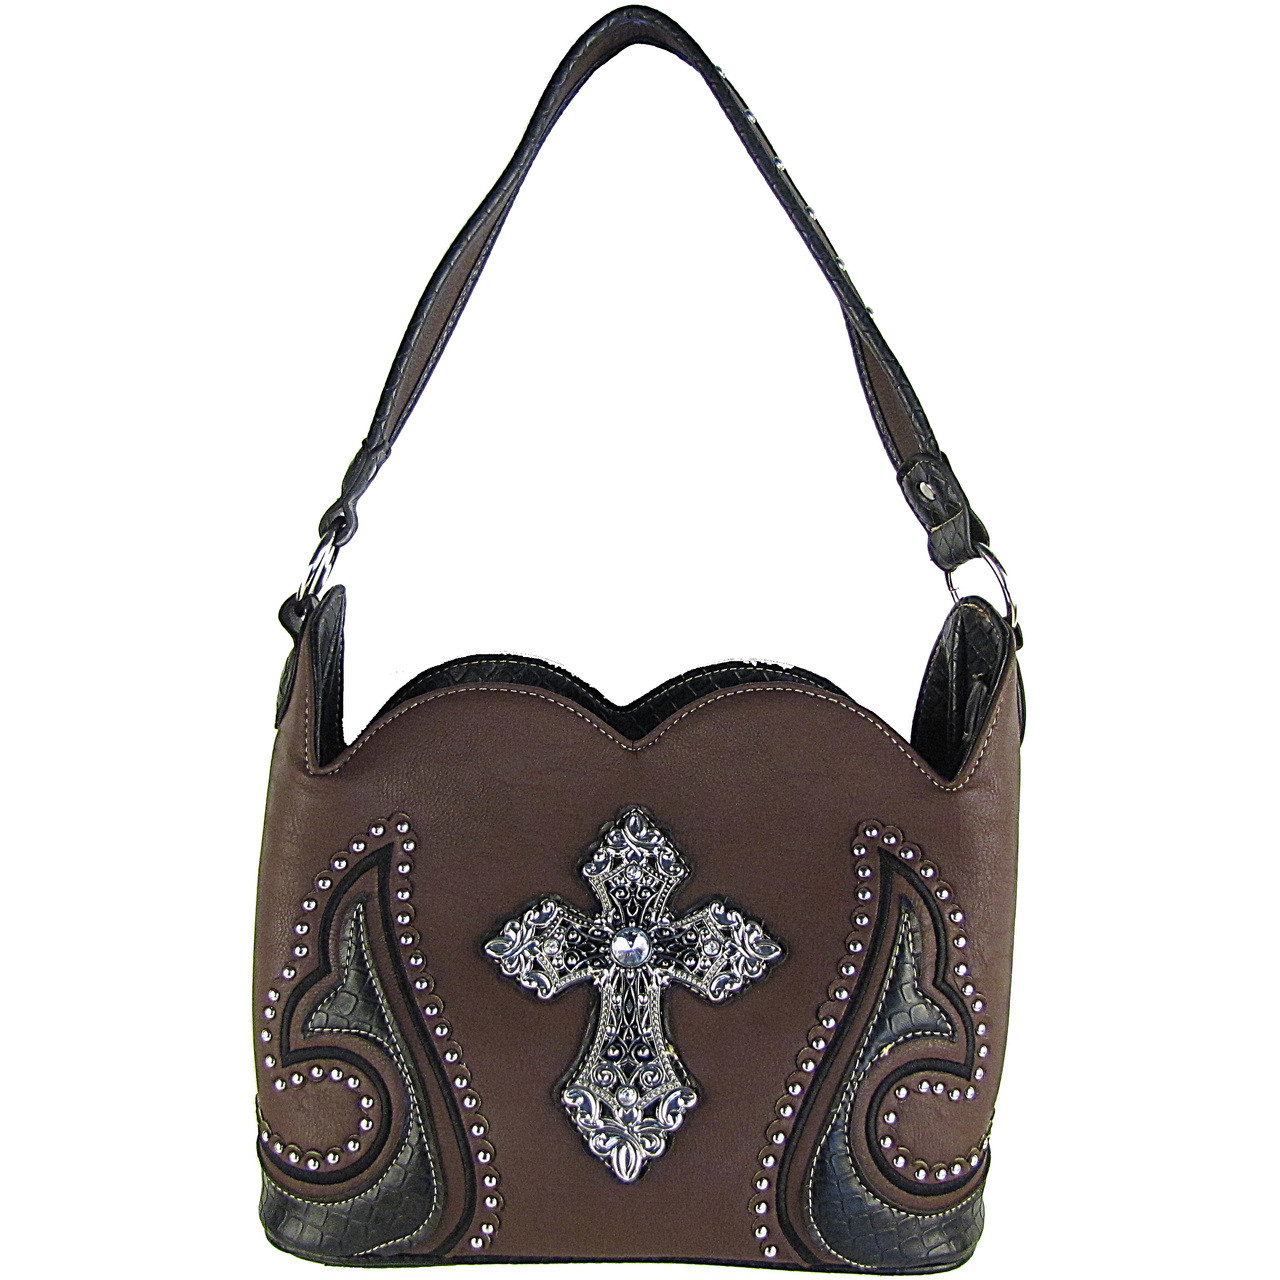 BROWN STUDDED CROSS CONCEALED CARRY LOOK SHOULDER HANDBAG HB1-CHF1047BRN